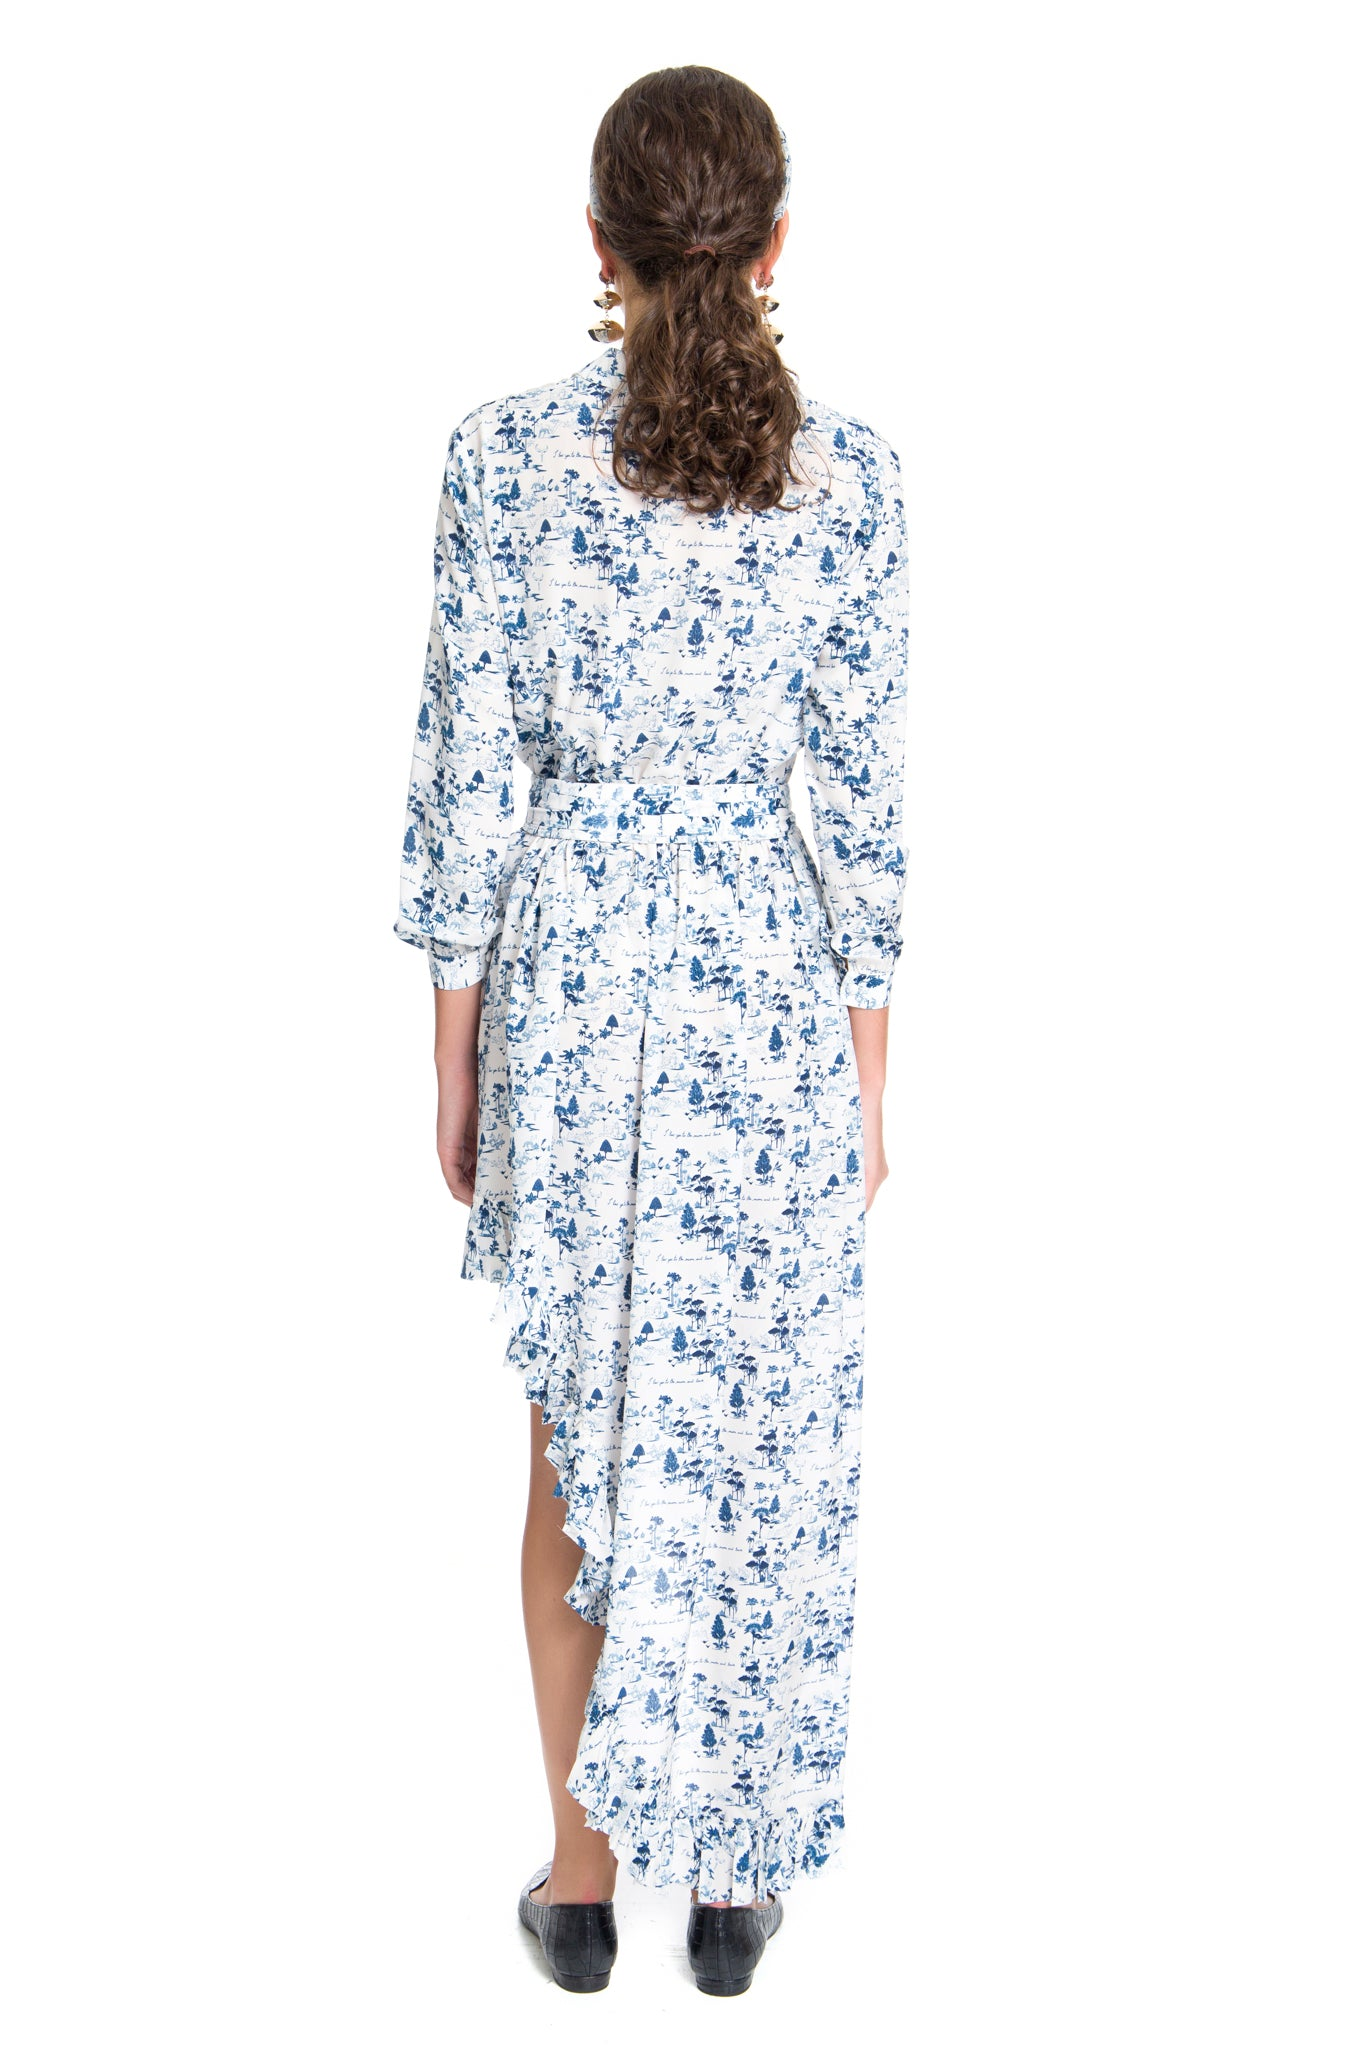 TOILE BLUE FRILL DRESS